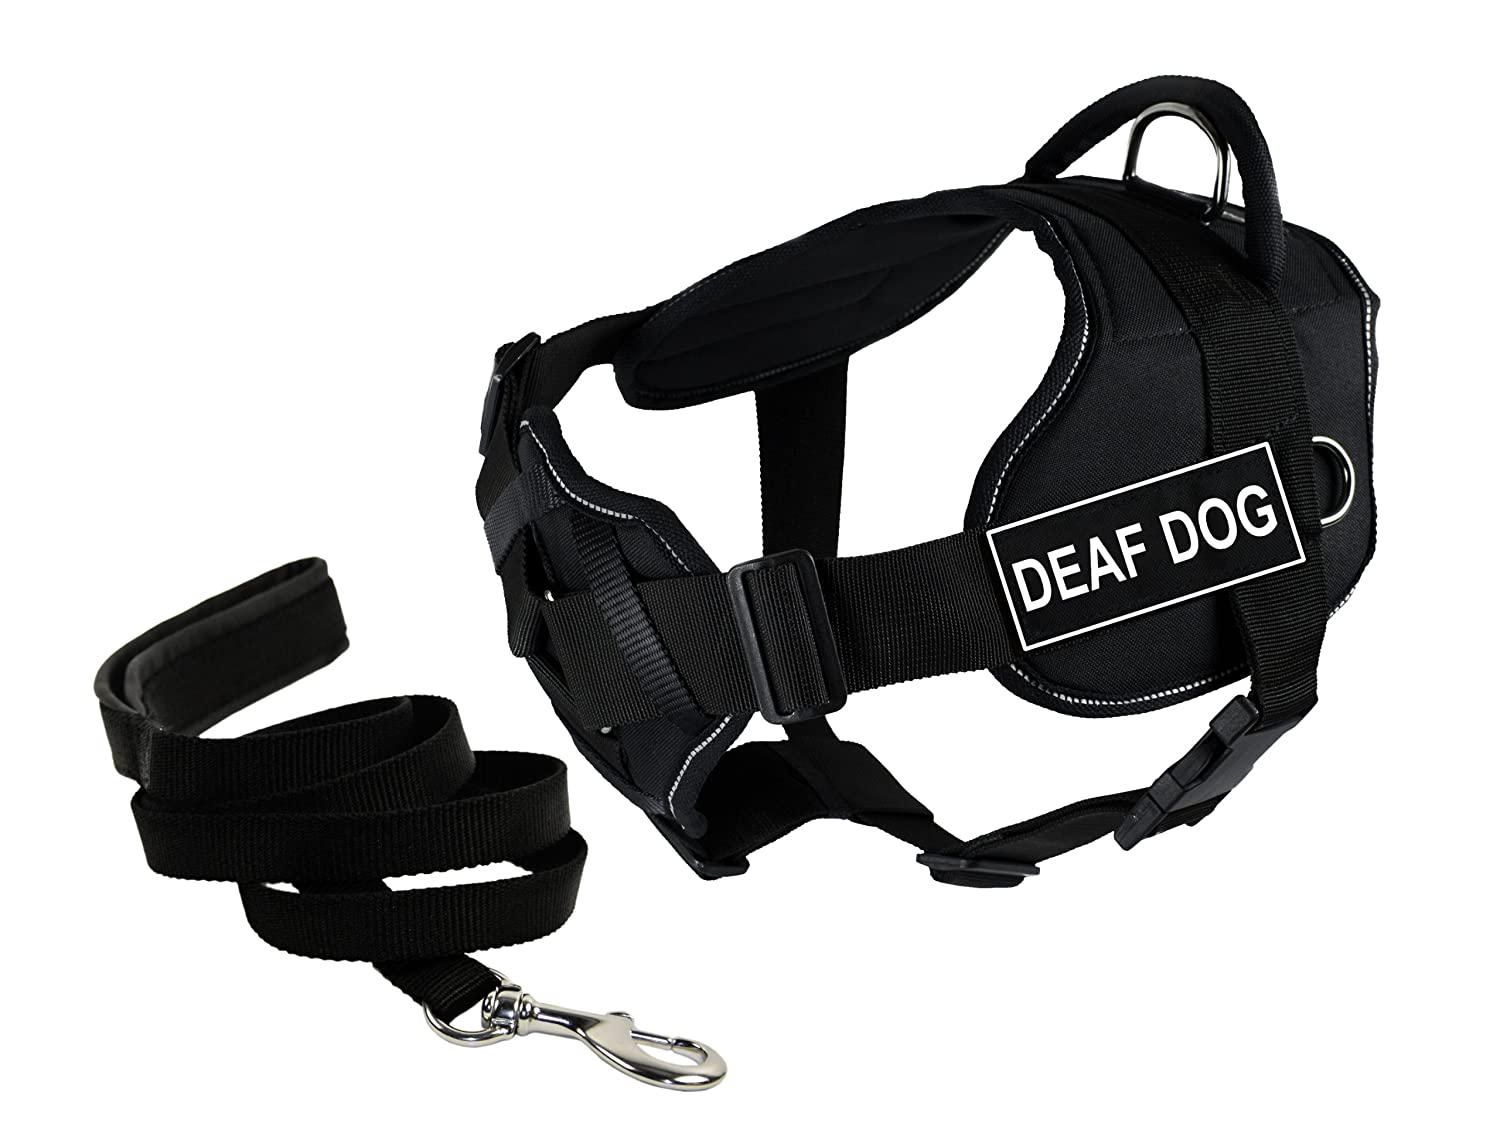 Dean & Tyler's DT Fun Chest Support Deaf Dog  Harness with Reflective Trim, X-Large, and 6 ft Padded Puppy Leash.